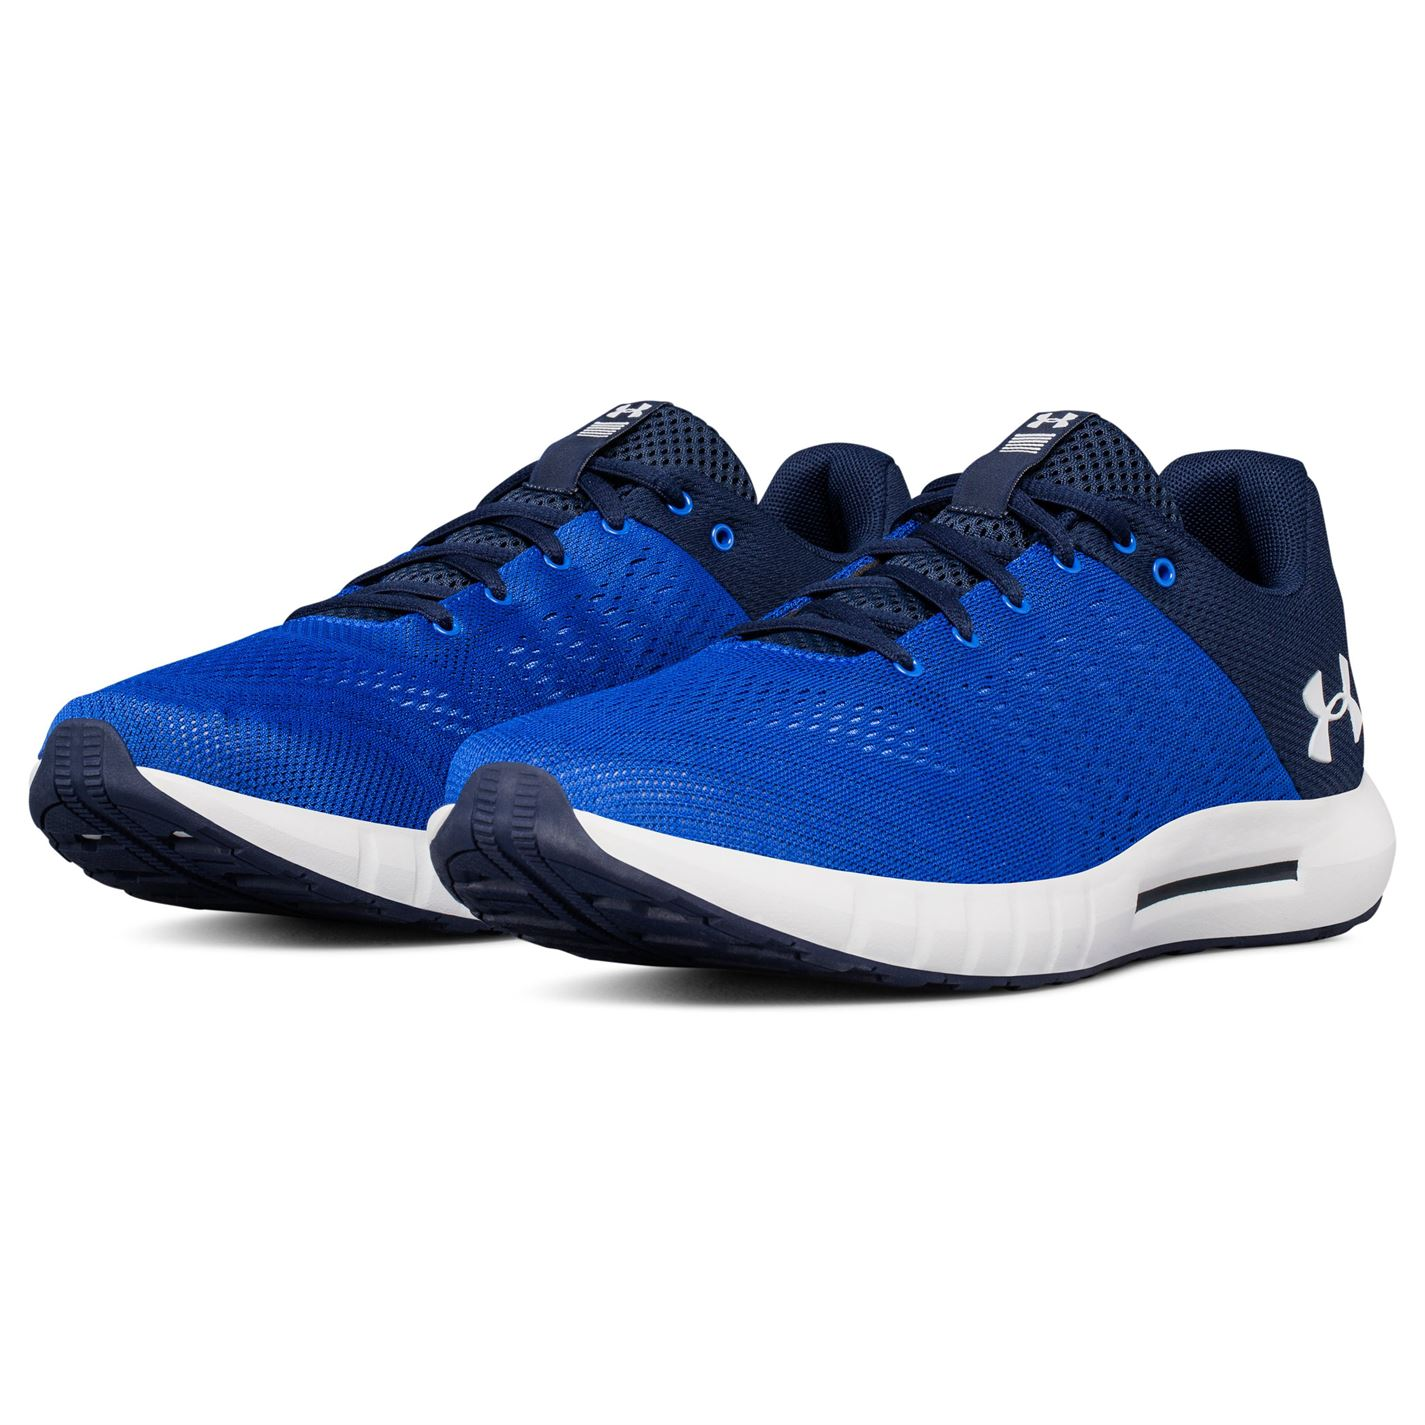 Under Armour Micro G Pursuit Sneakers Mens Gents Runners